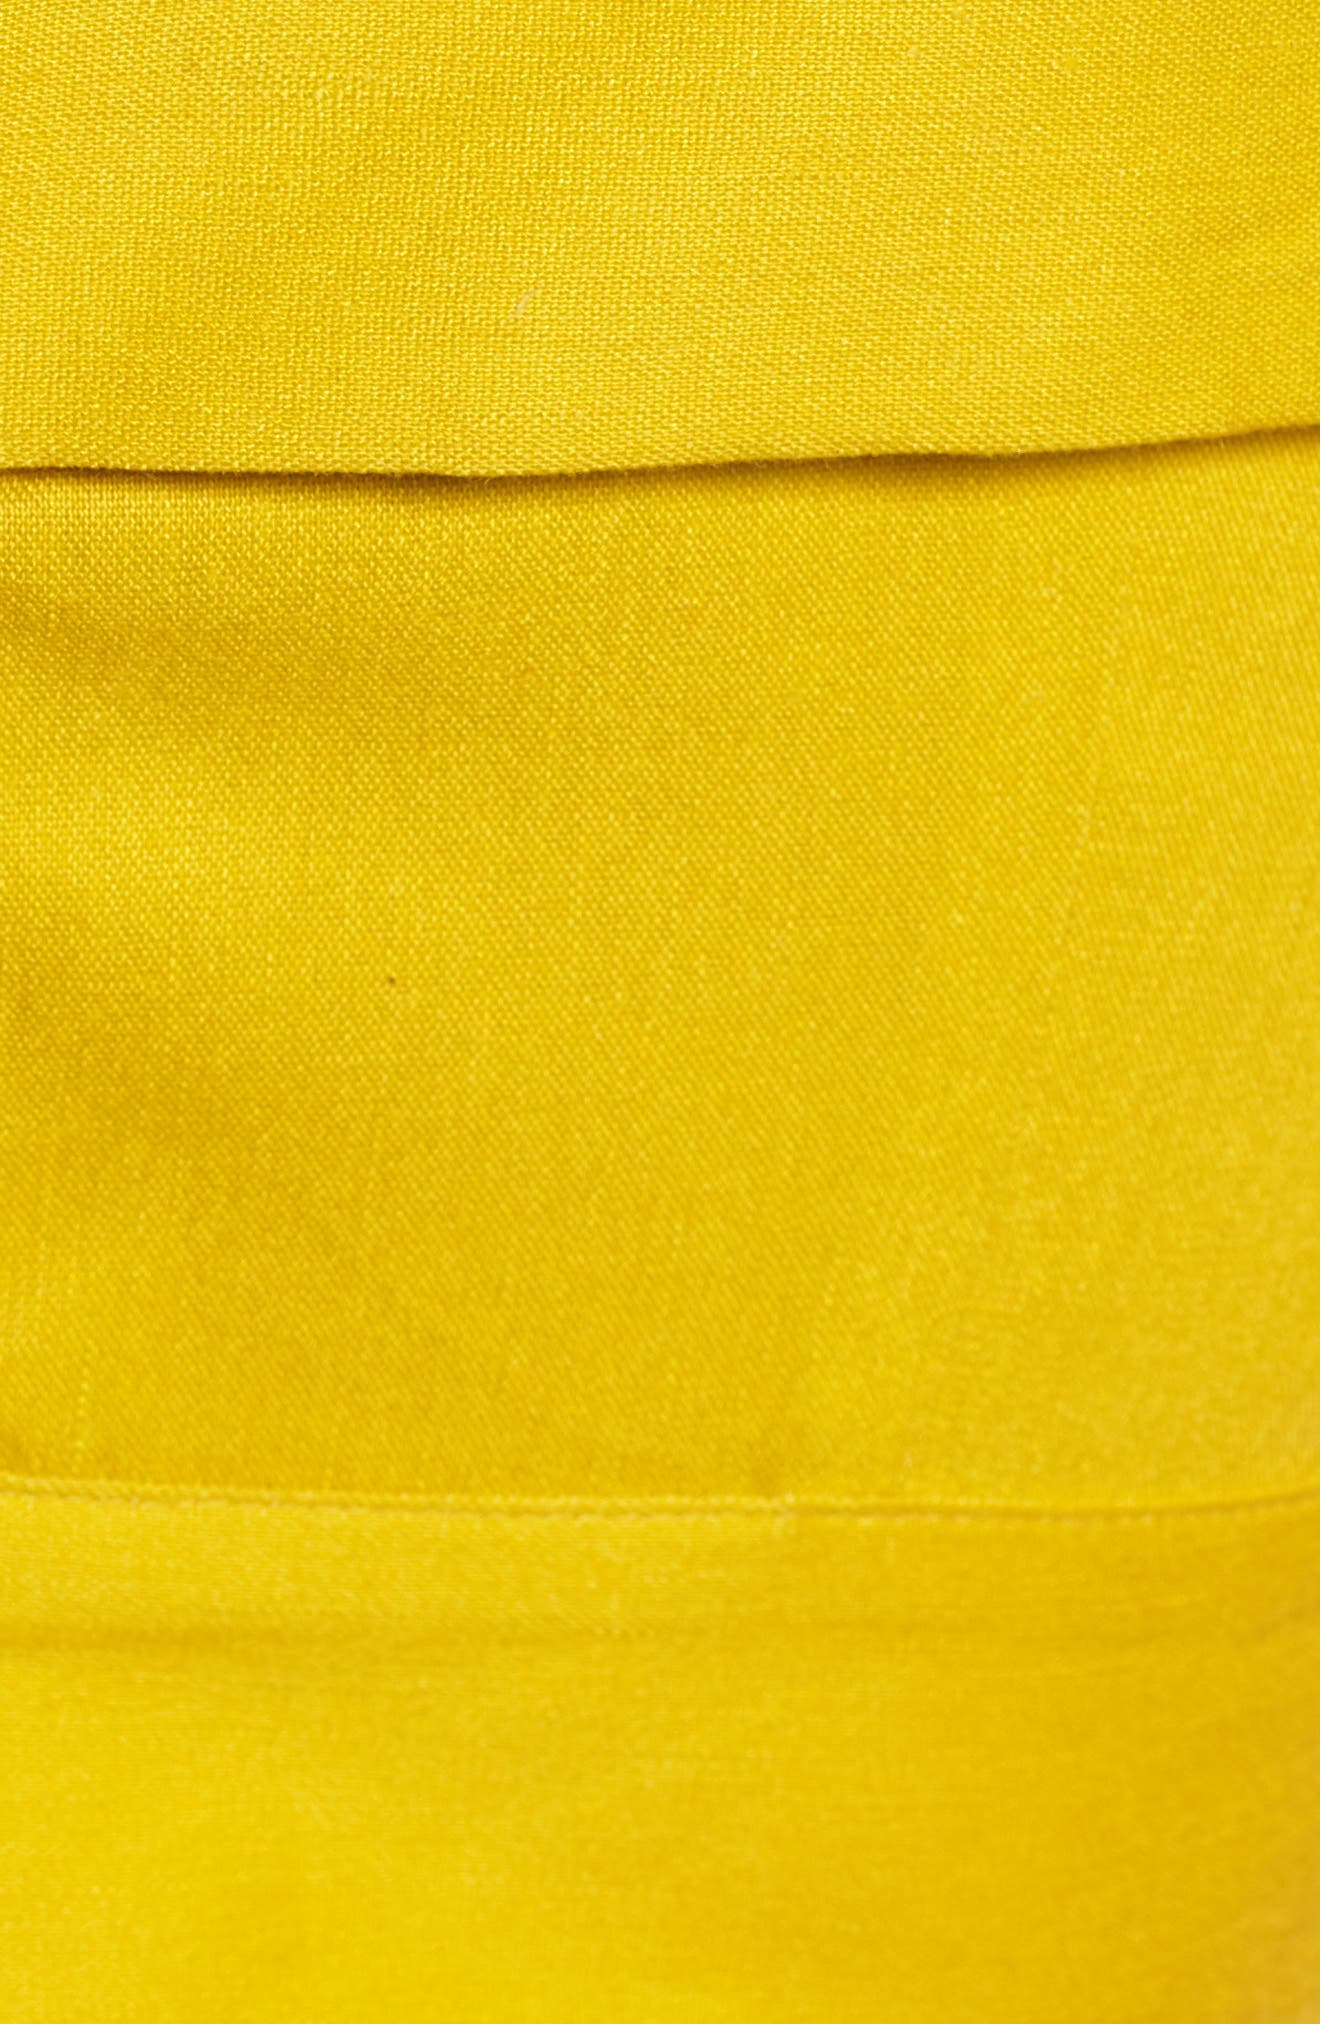 Cold Shoulder Crop Top,                             Alternate thumbnail 4, color,                             Yellow Tea